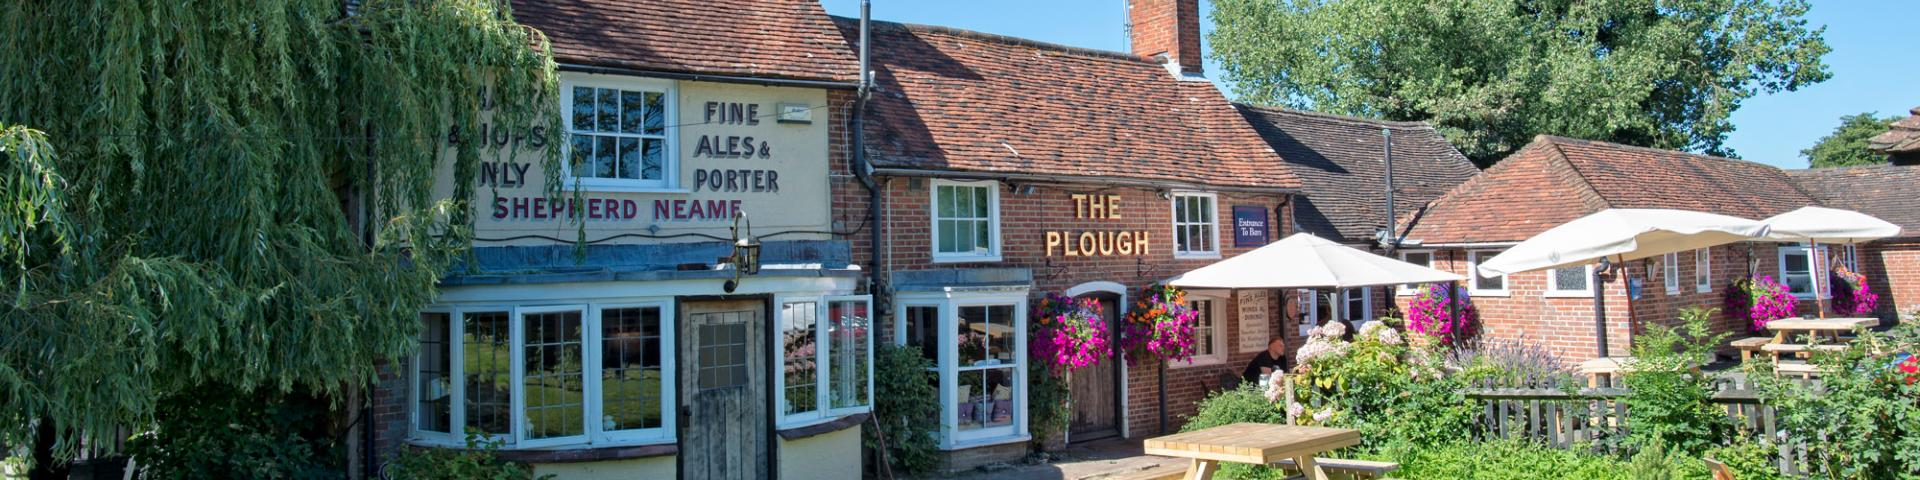 Plough, Upper Dicker